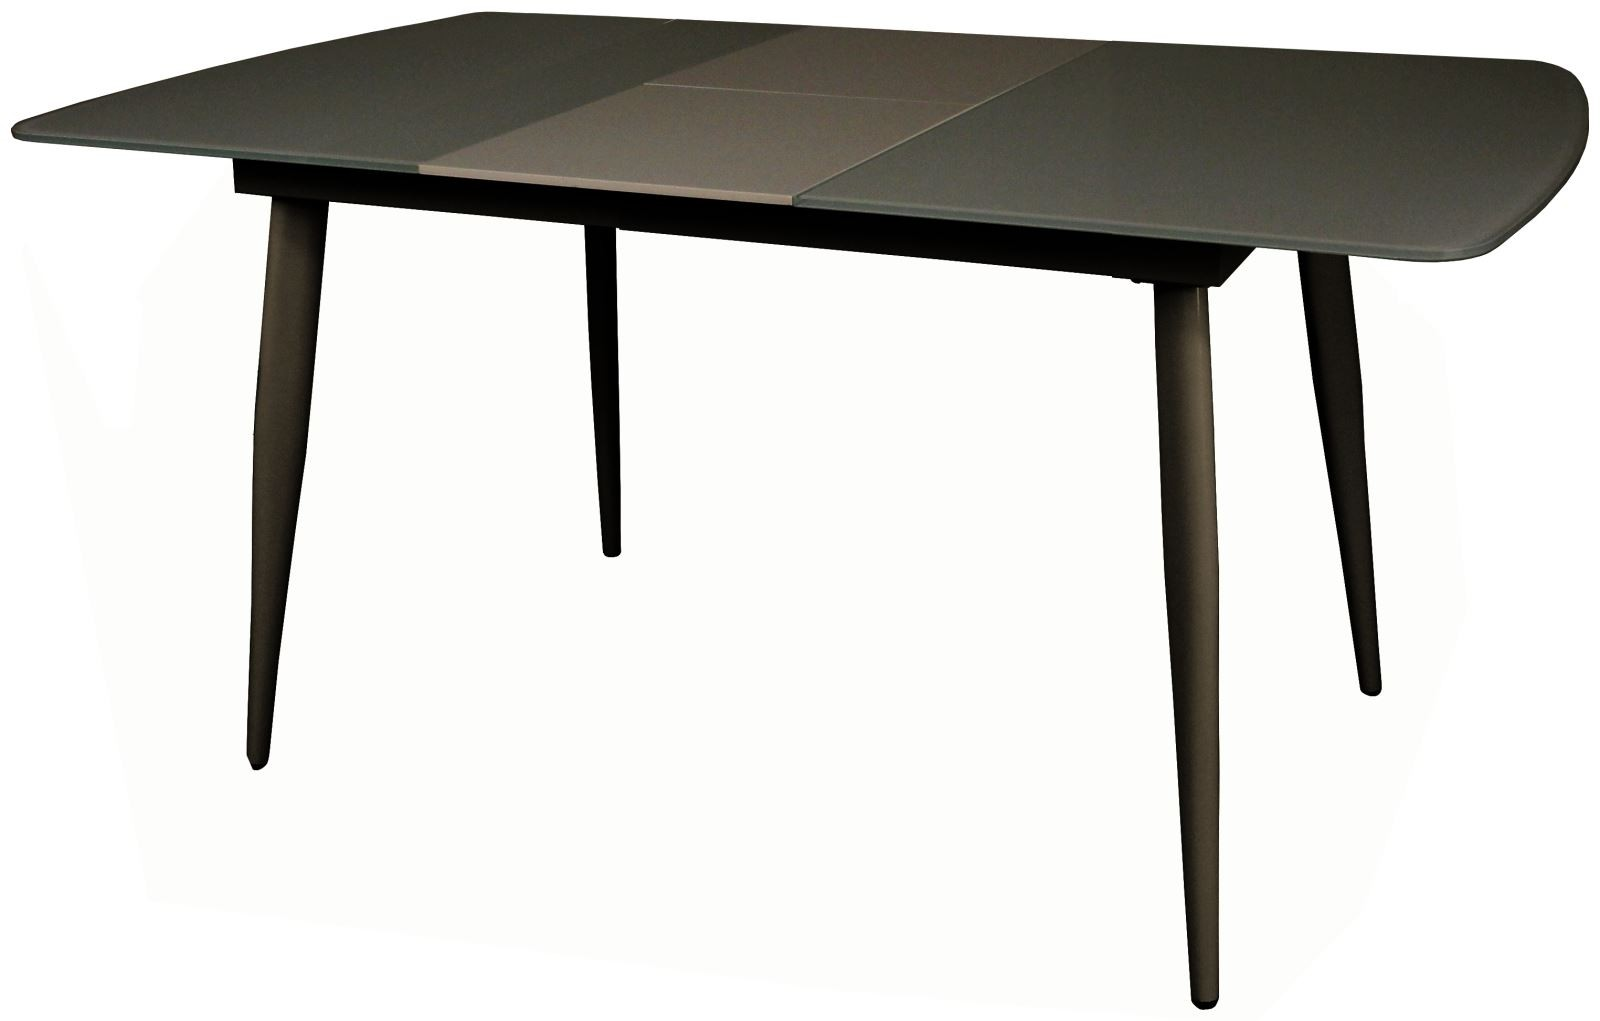 CONTEMPORARY Small Extending Dining Table - Grey